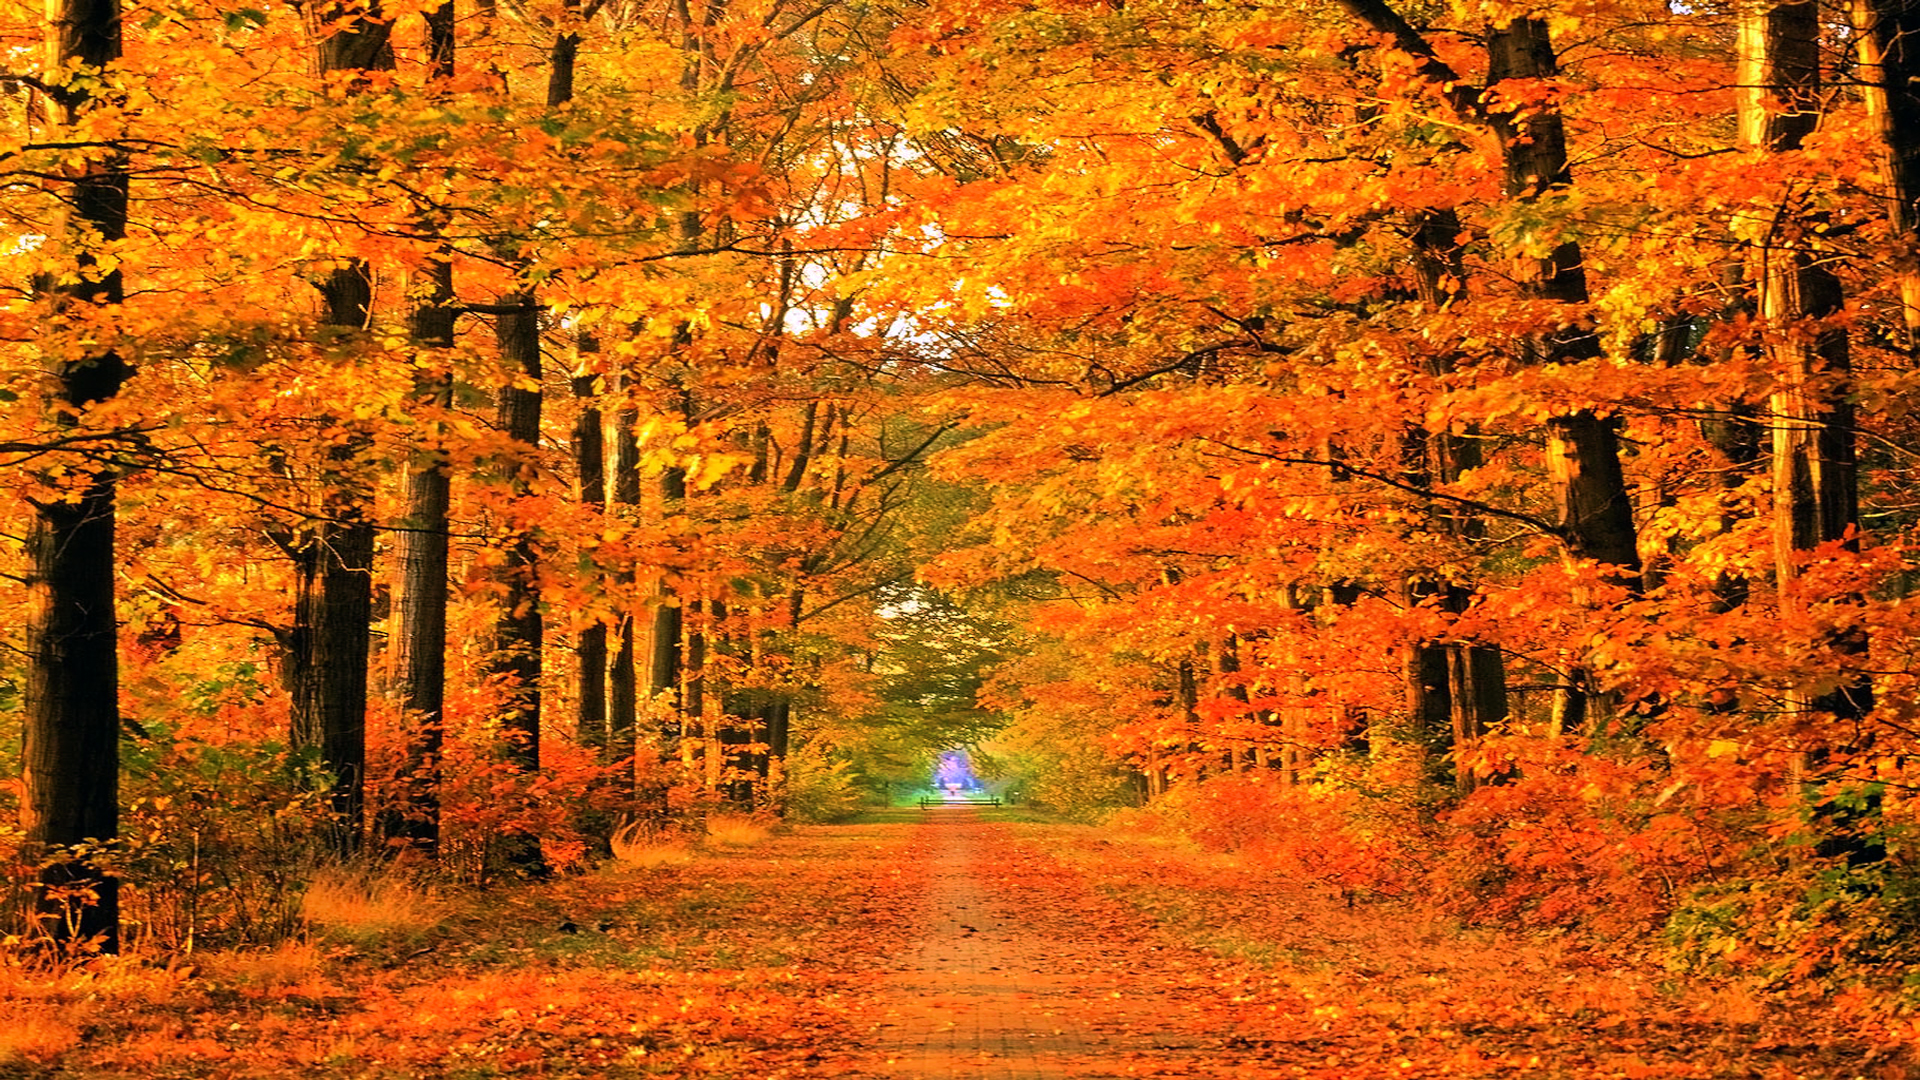 Autumn Roads Wallpaper 1920x1080 Autumn Roads Parks 1920x1080